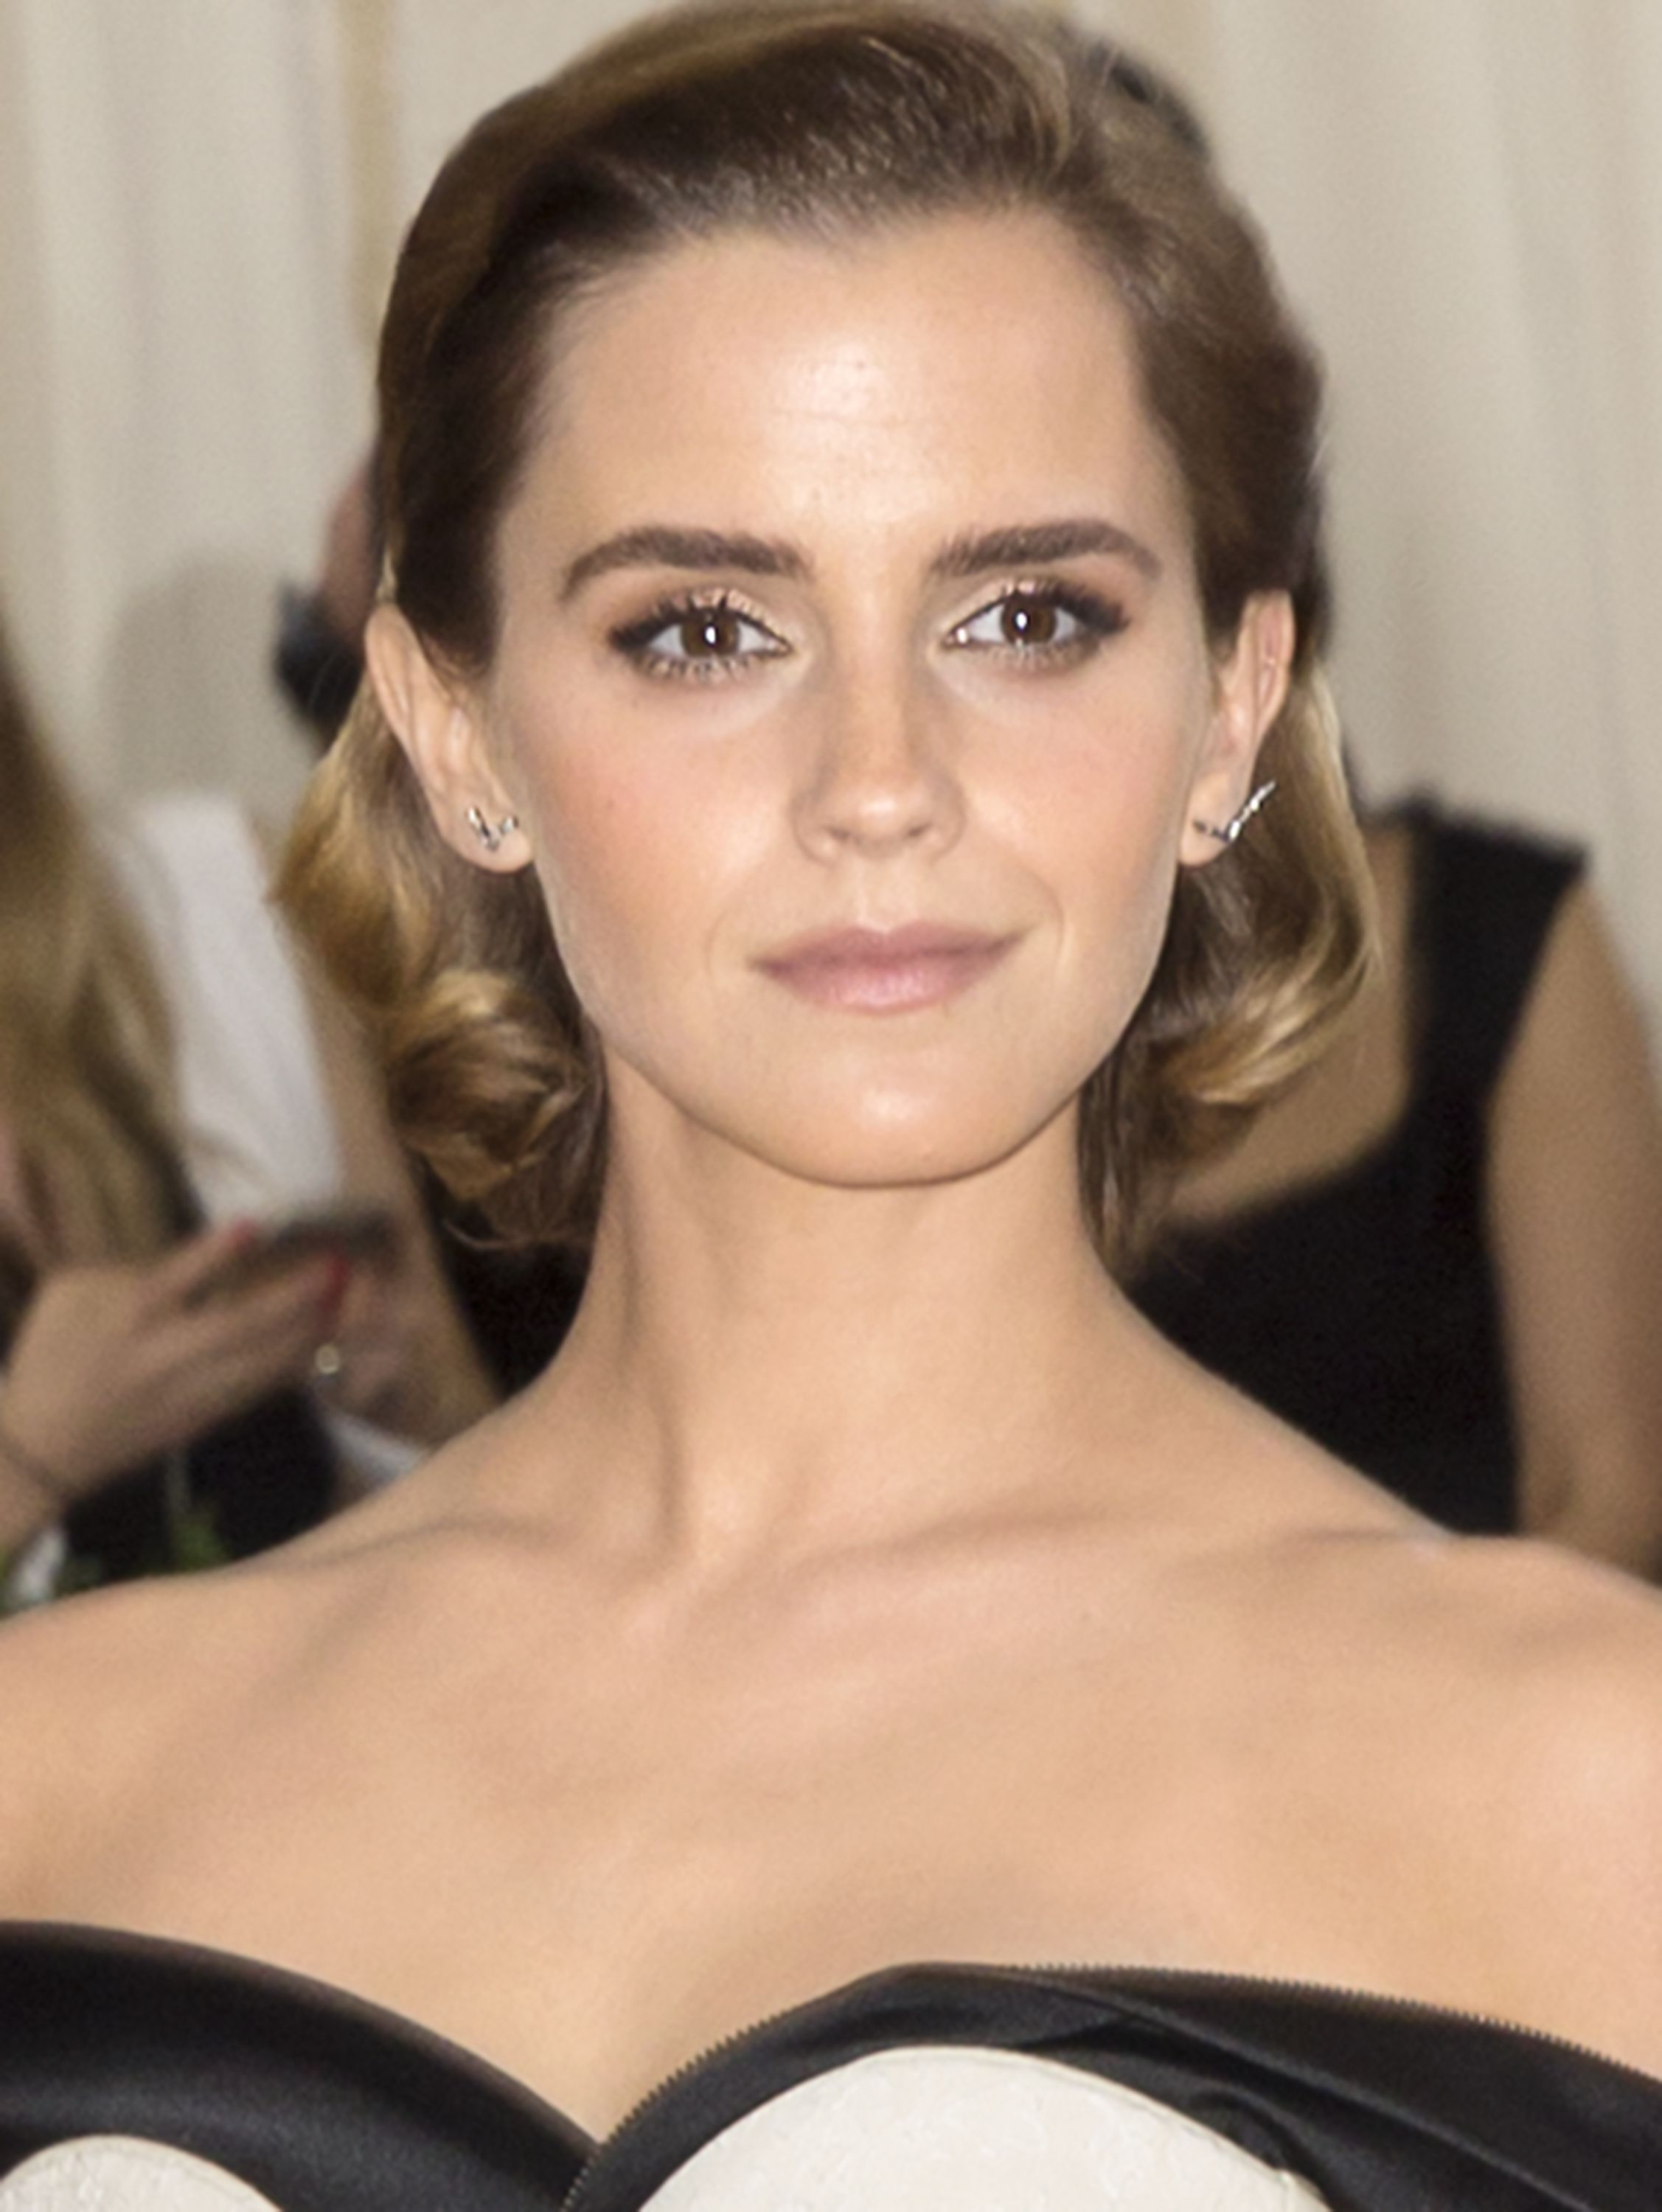 Emma Watson Promotes Ethical, Sustainable Fashion in New